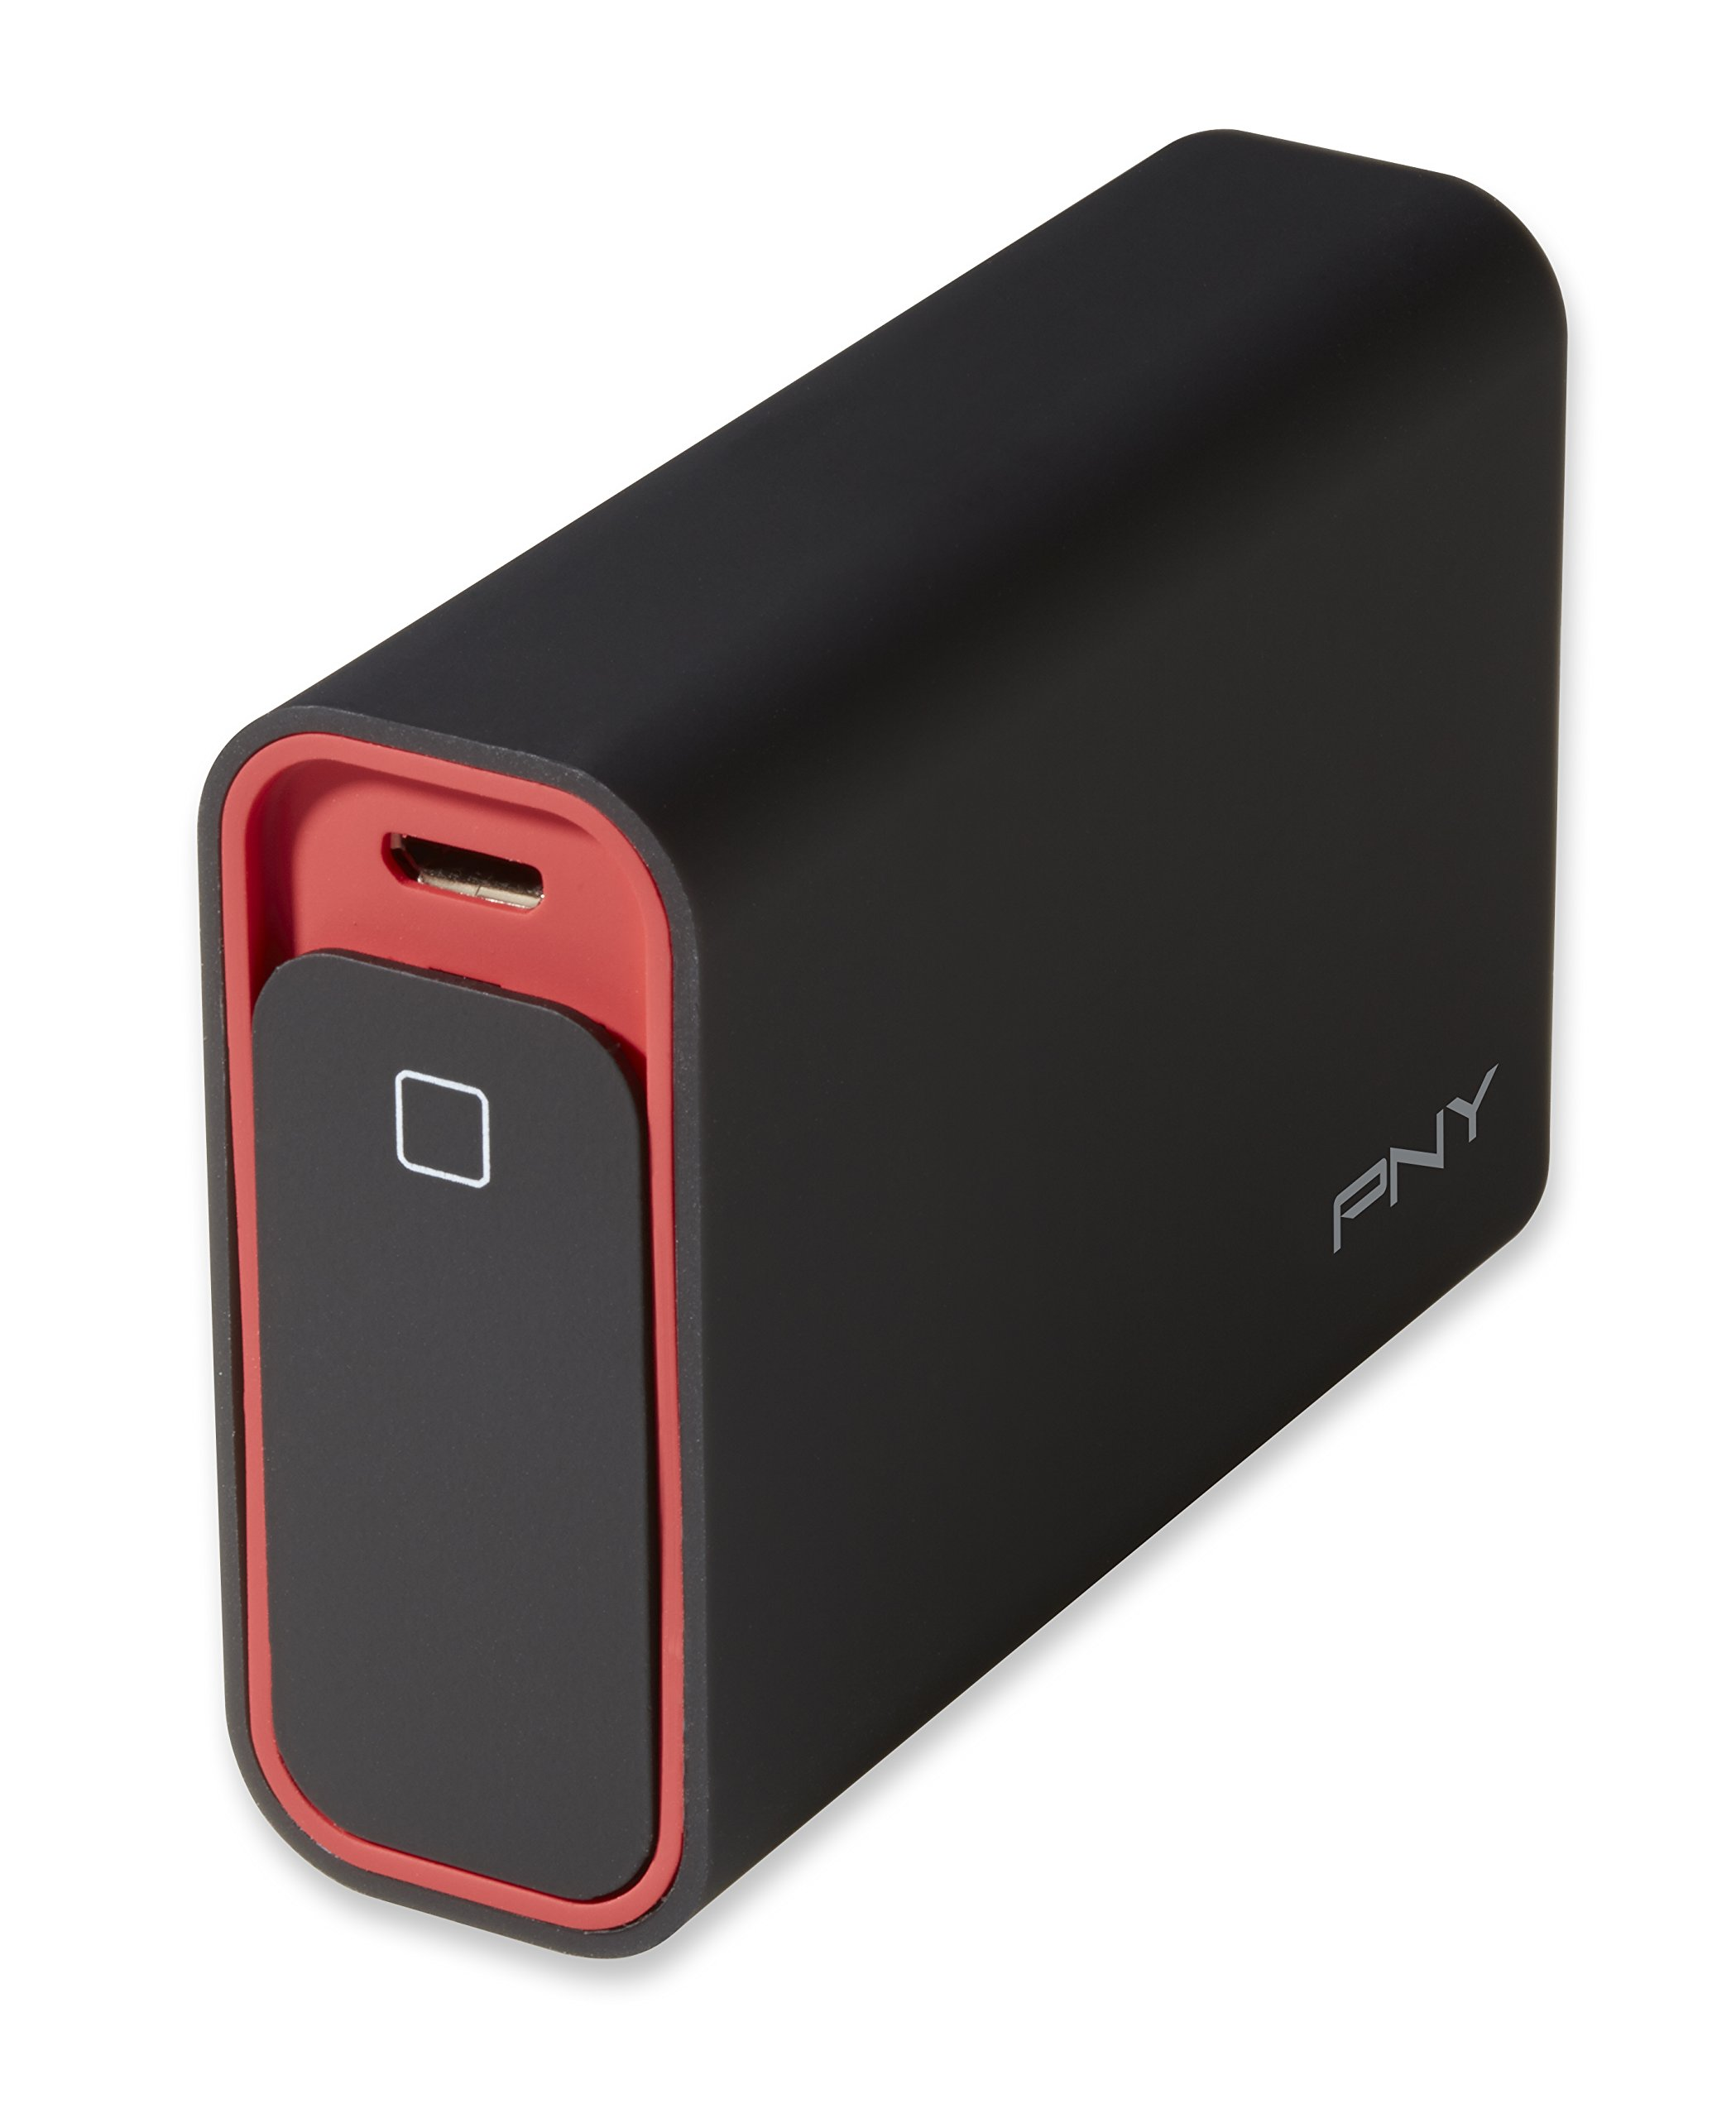 PNY CT5200 5200mAh 1 Amp PowerPack - Universal Portable Rechargeable Battery Charger for Apple iPhone, Samsung Galaxy, Nexus, HTC, Motorola, LG, BlackBerry, and other Android Smartphones by PNY (Image #3)